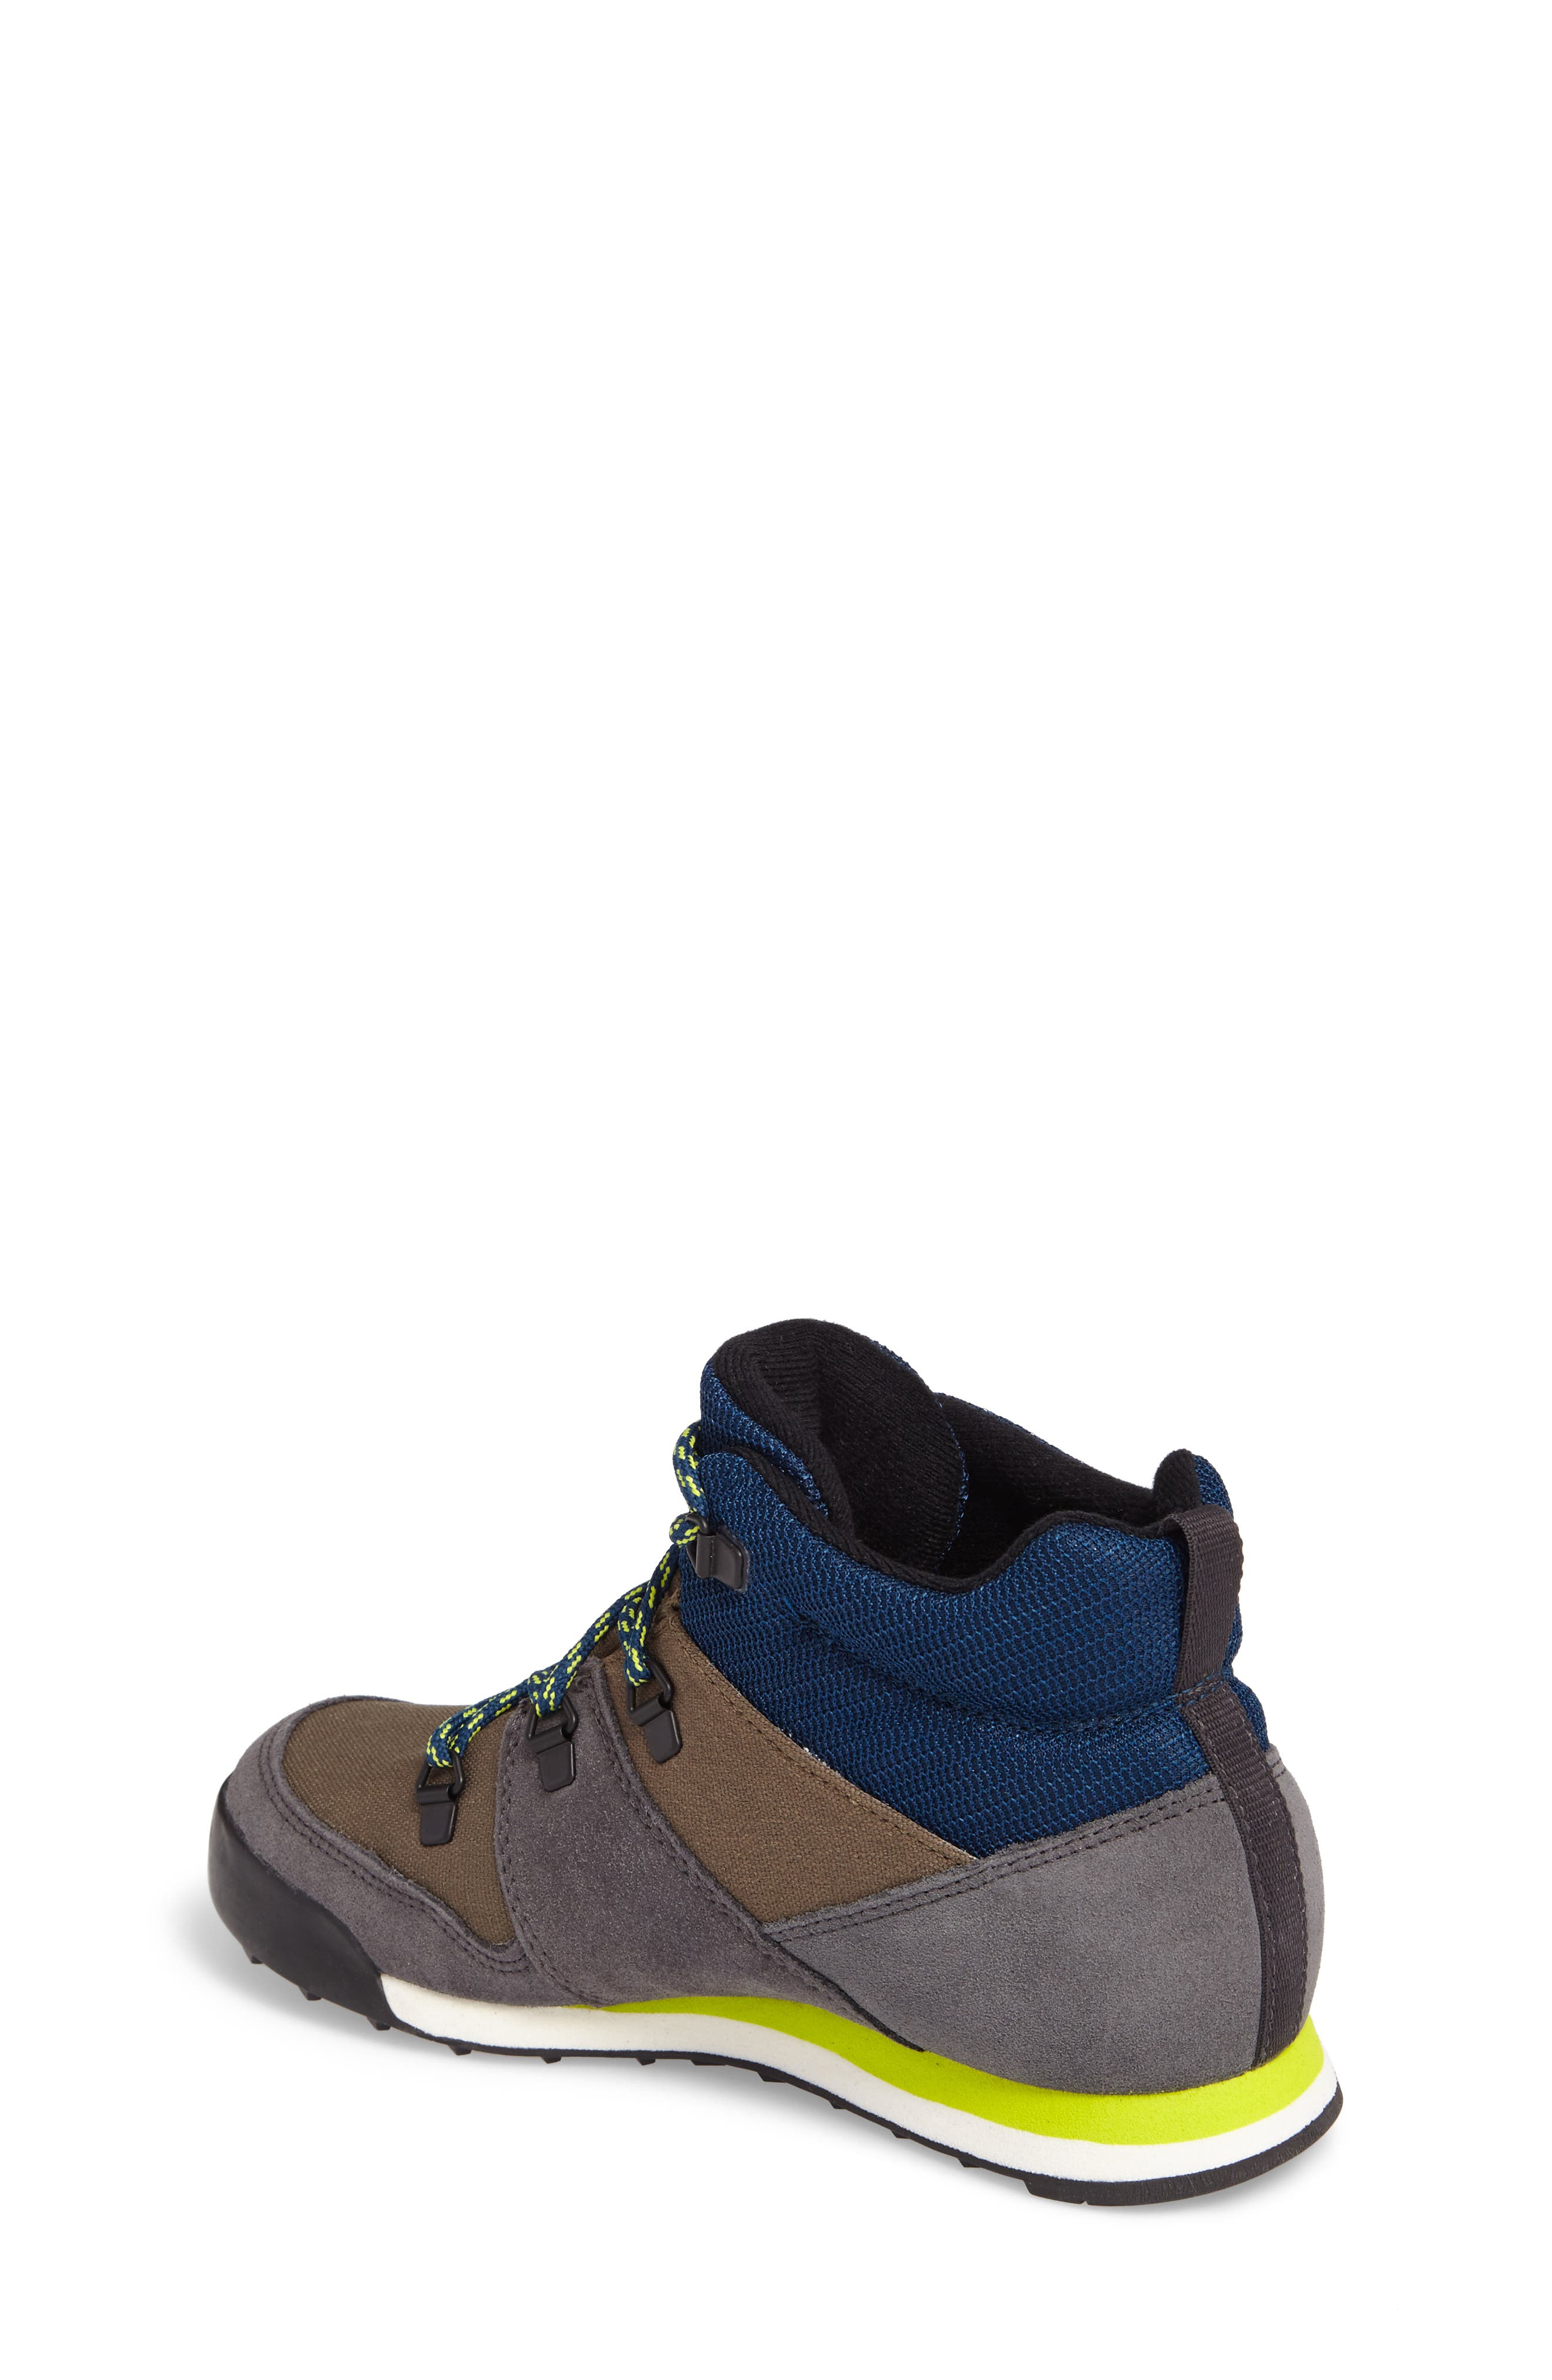 Snowpitch Insulated Sneaker Boot,                             Alternate thumbnail 2, color,                             Cargo/ Black/ Solar Yellow